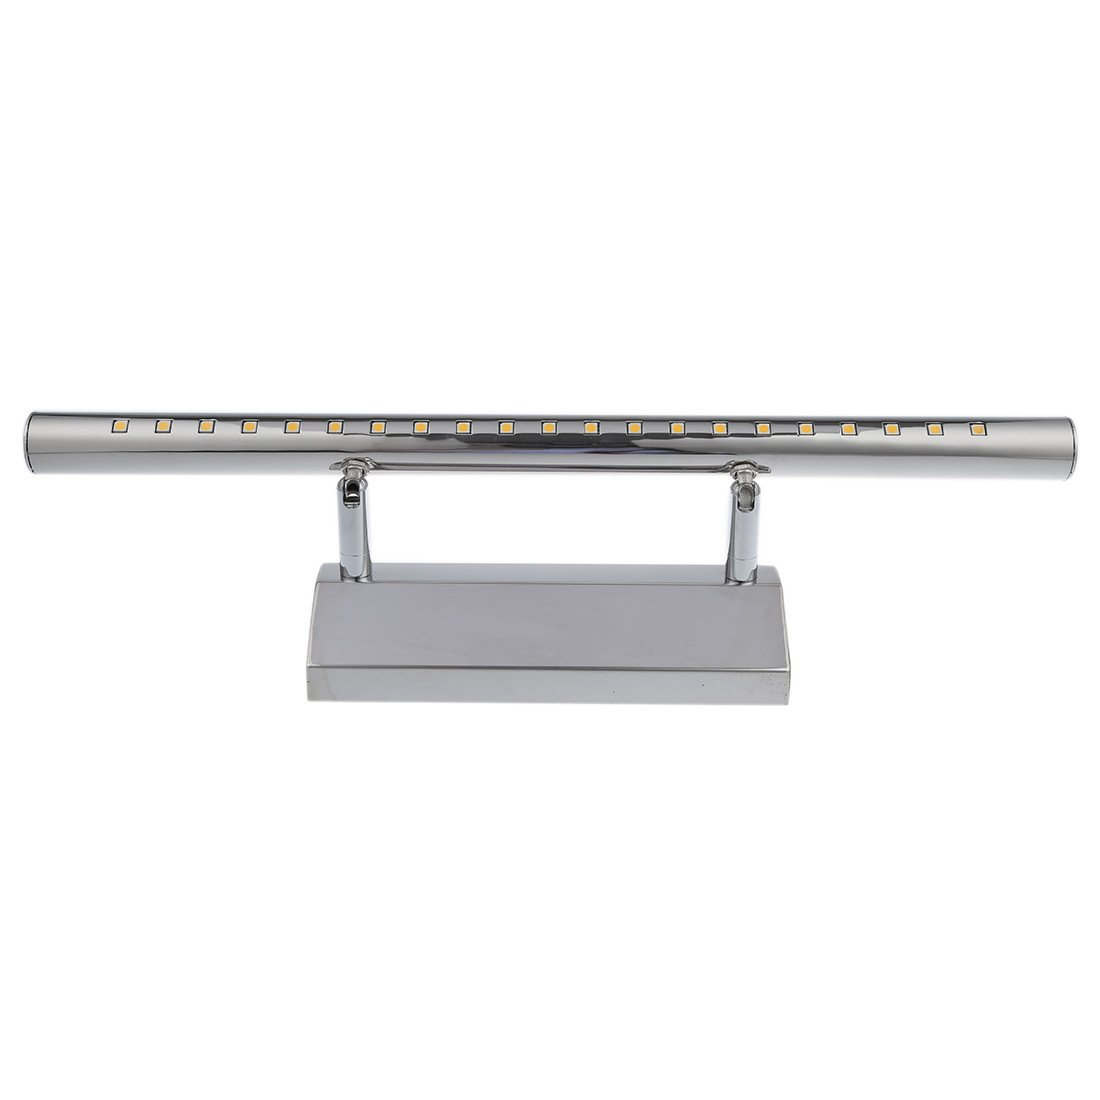 $20.66- 5W 21 LED 5050 SMD Stainless Steel Mirror Light Wall Lamp Bath Lamp Warm White Light